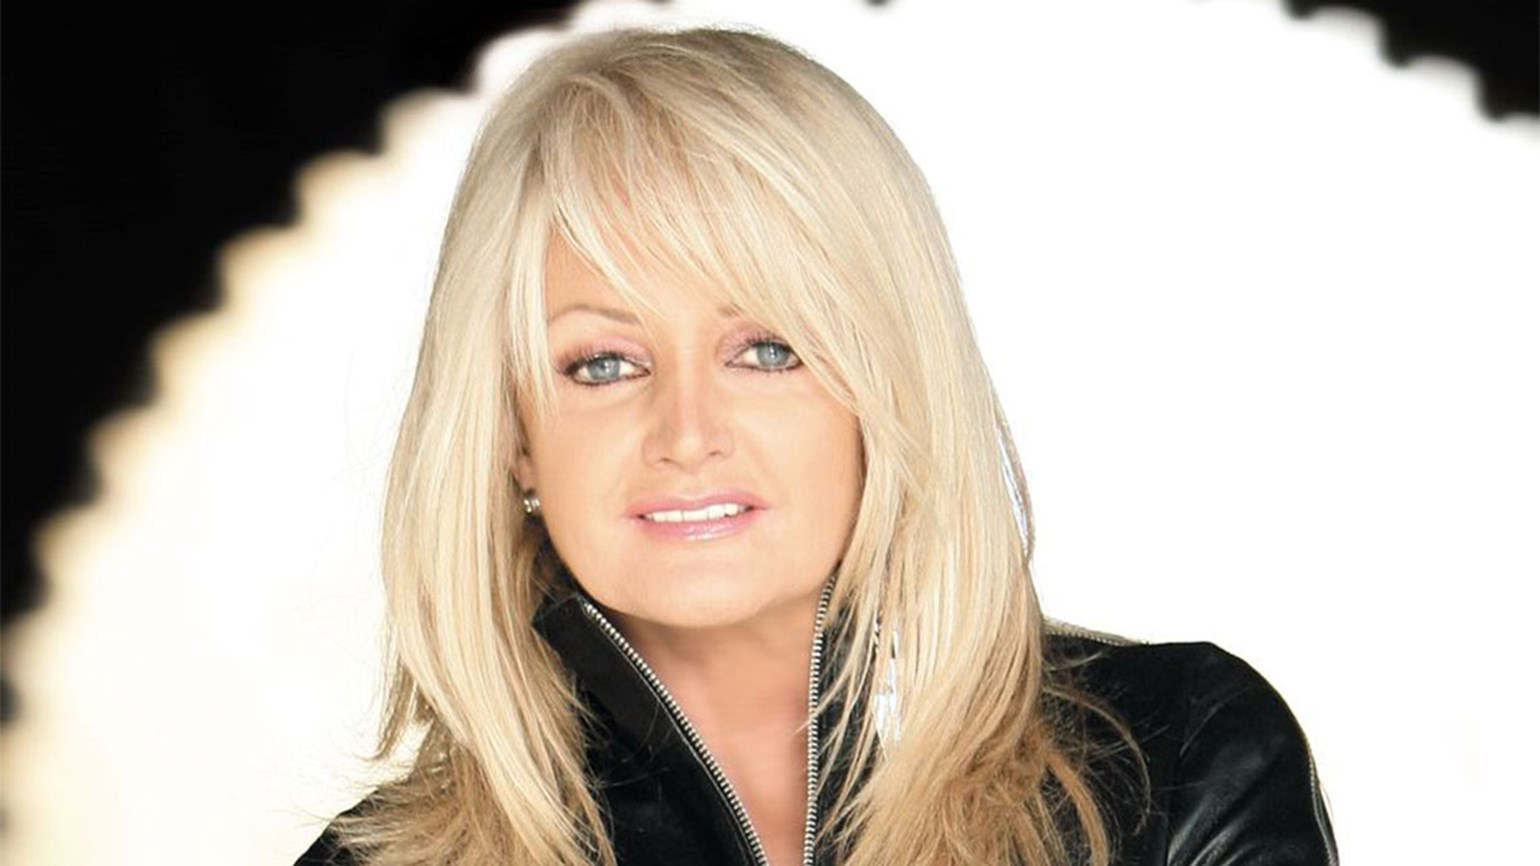 Royal Caribbean lands Bonnie Tyler to perform on eclipse cruise